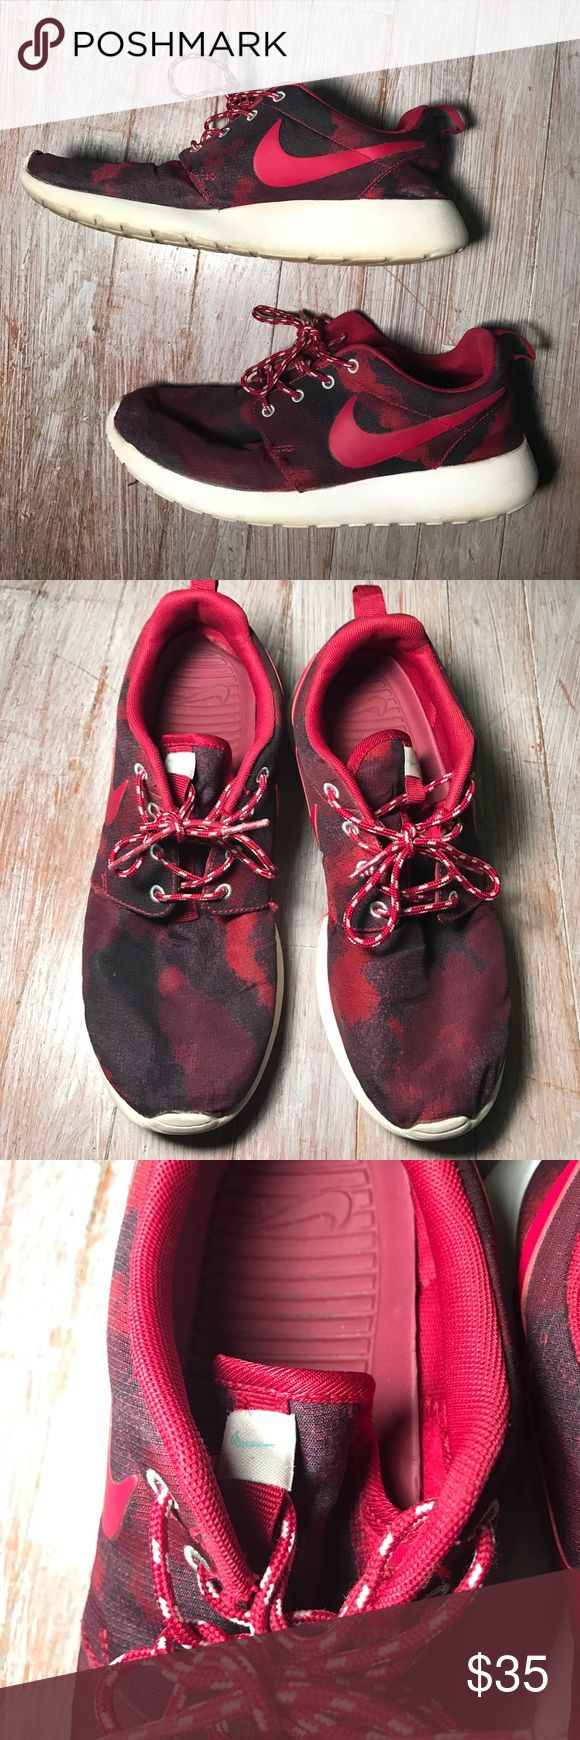 Women's Nike Roshe Runs PRICE DROP Size 8 women's Nike Roshe Runs. These are maroon/red and have a camo-like design. They're very comfortable but I don't wear them much because I have a lot of tennis shoes. Great condition! Nike Shoes Athletic Shoes